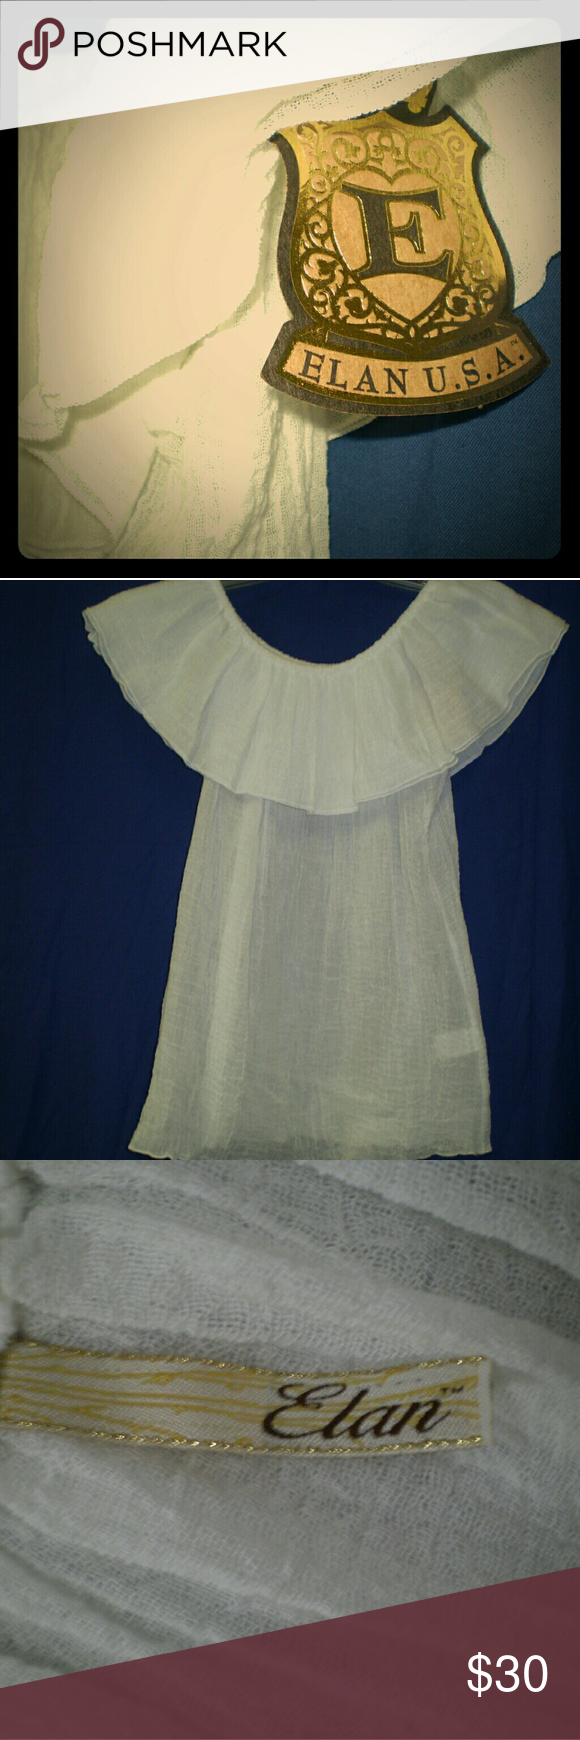 Elan USA off the shoulder blouse Beautiful Elam USA off the shoulder, light blouse.  Purchased new, never wore it.  It is see through, and stretchy, could fit a number of sizes.   Great beach top to pair with any breezy outfit. Elan Tops Blouses